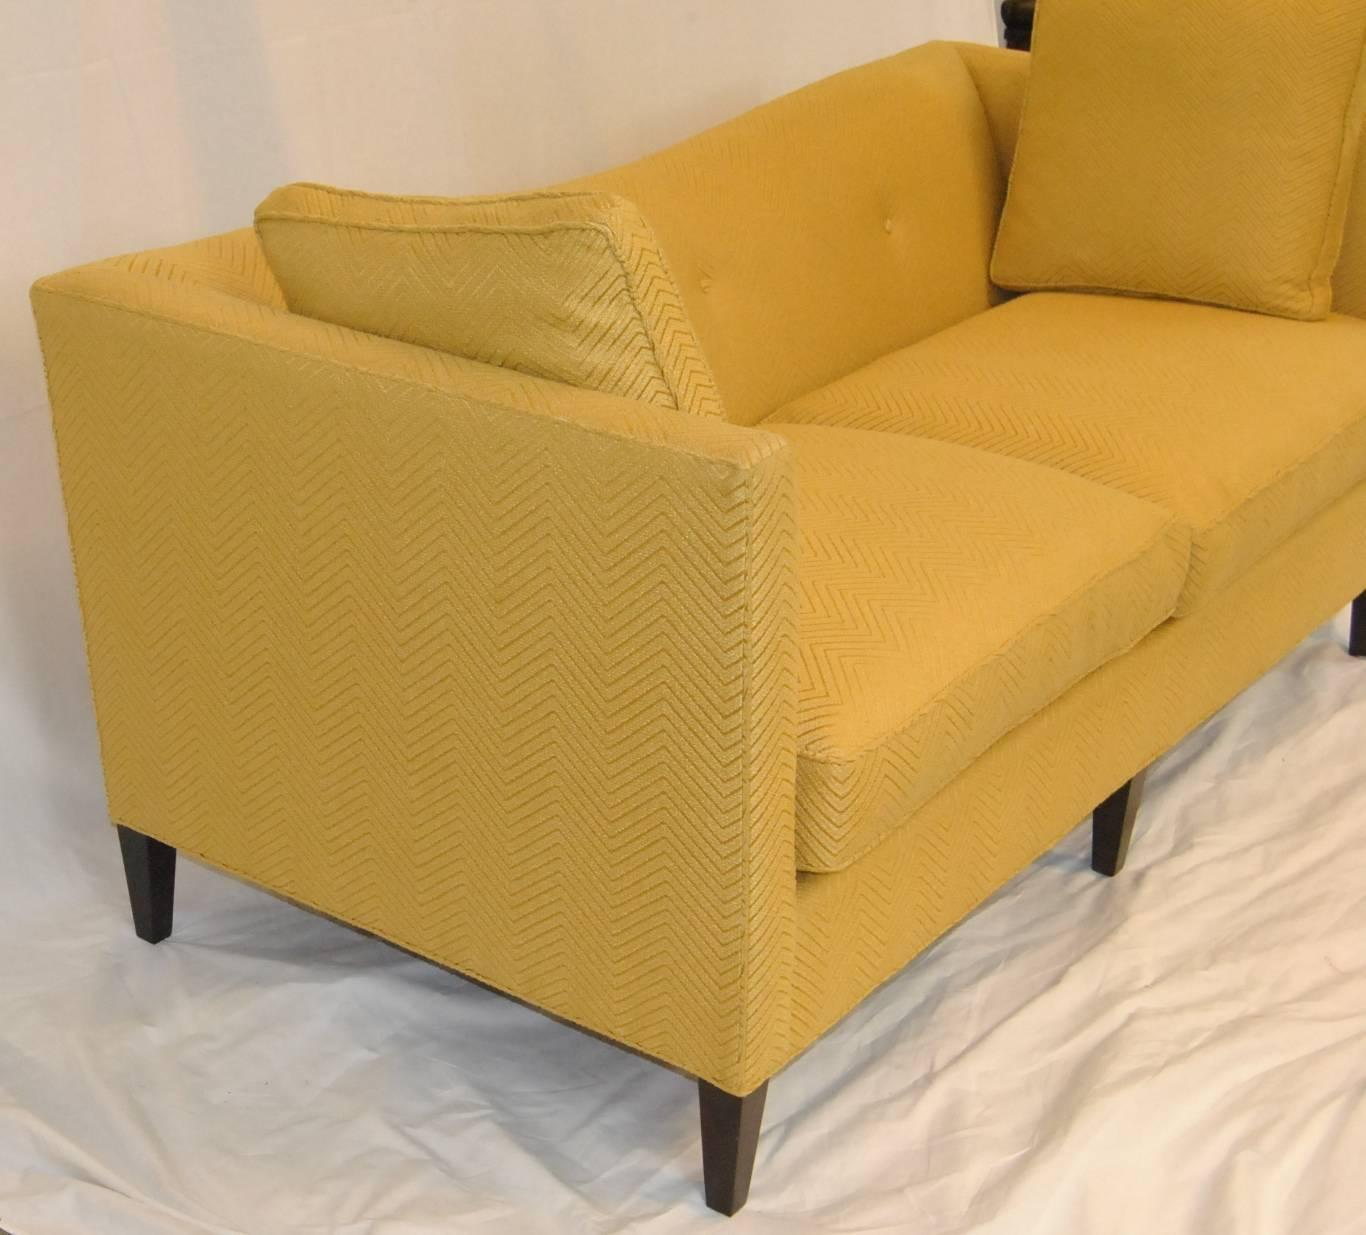 French Tuxedo Butter Yellow Sofa By Baker Furniture, Baker